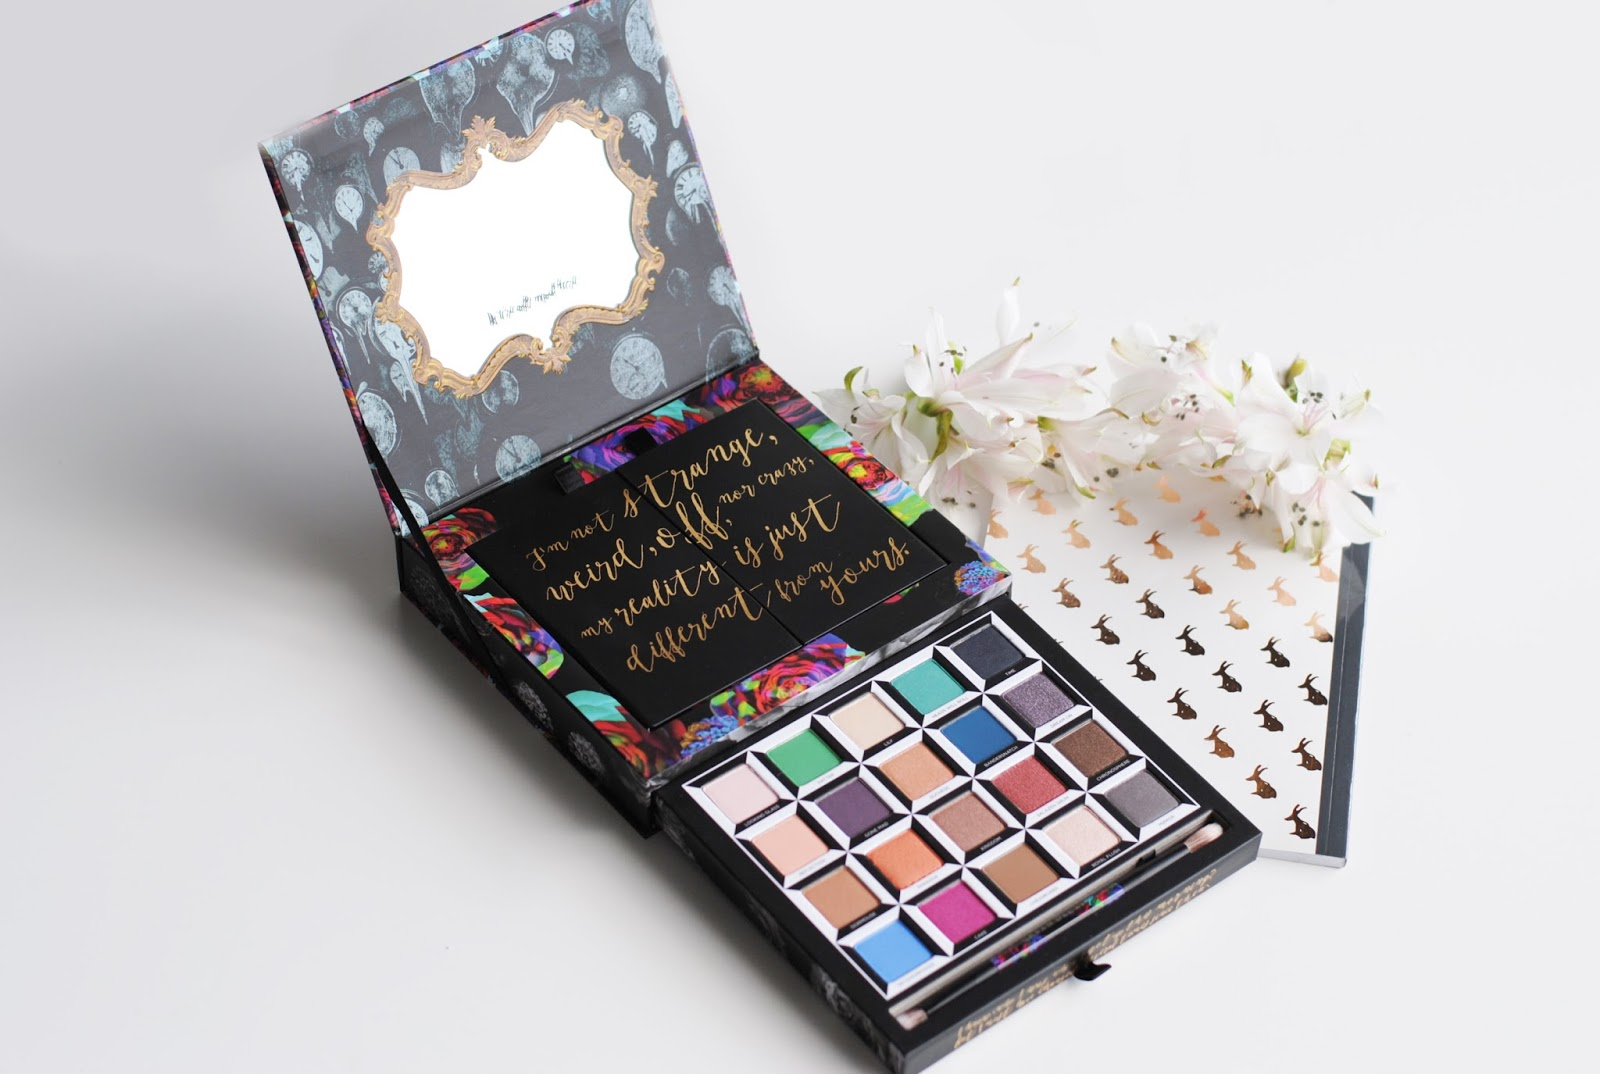 urban decay alice in wonderland palette 2016 review